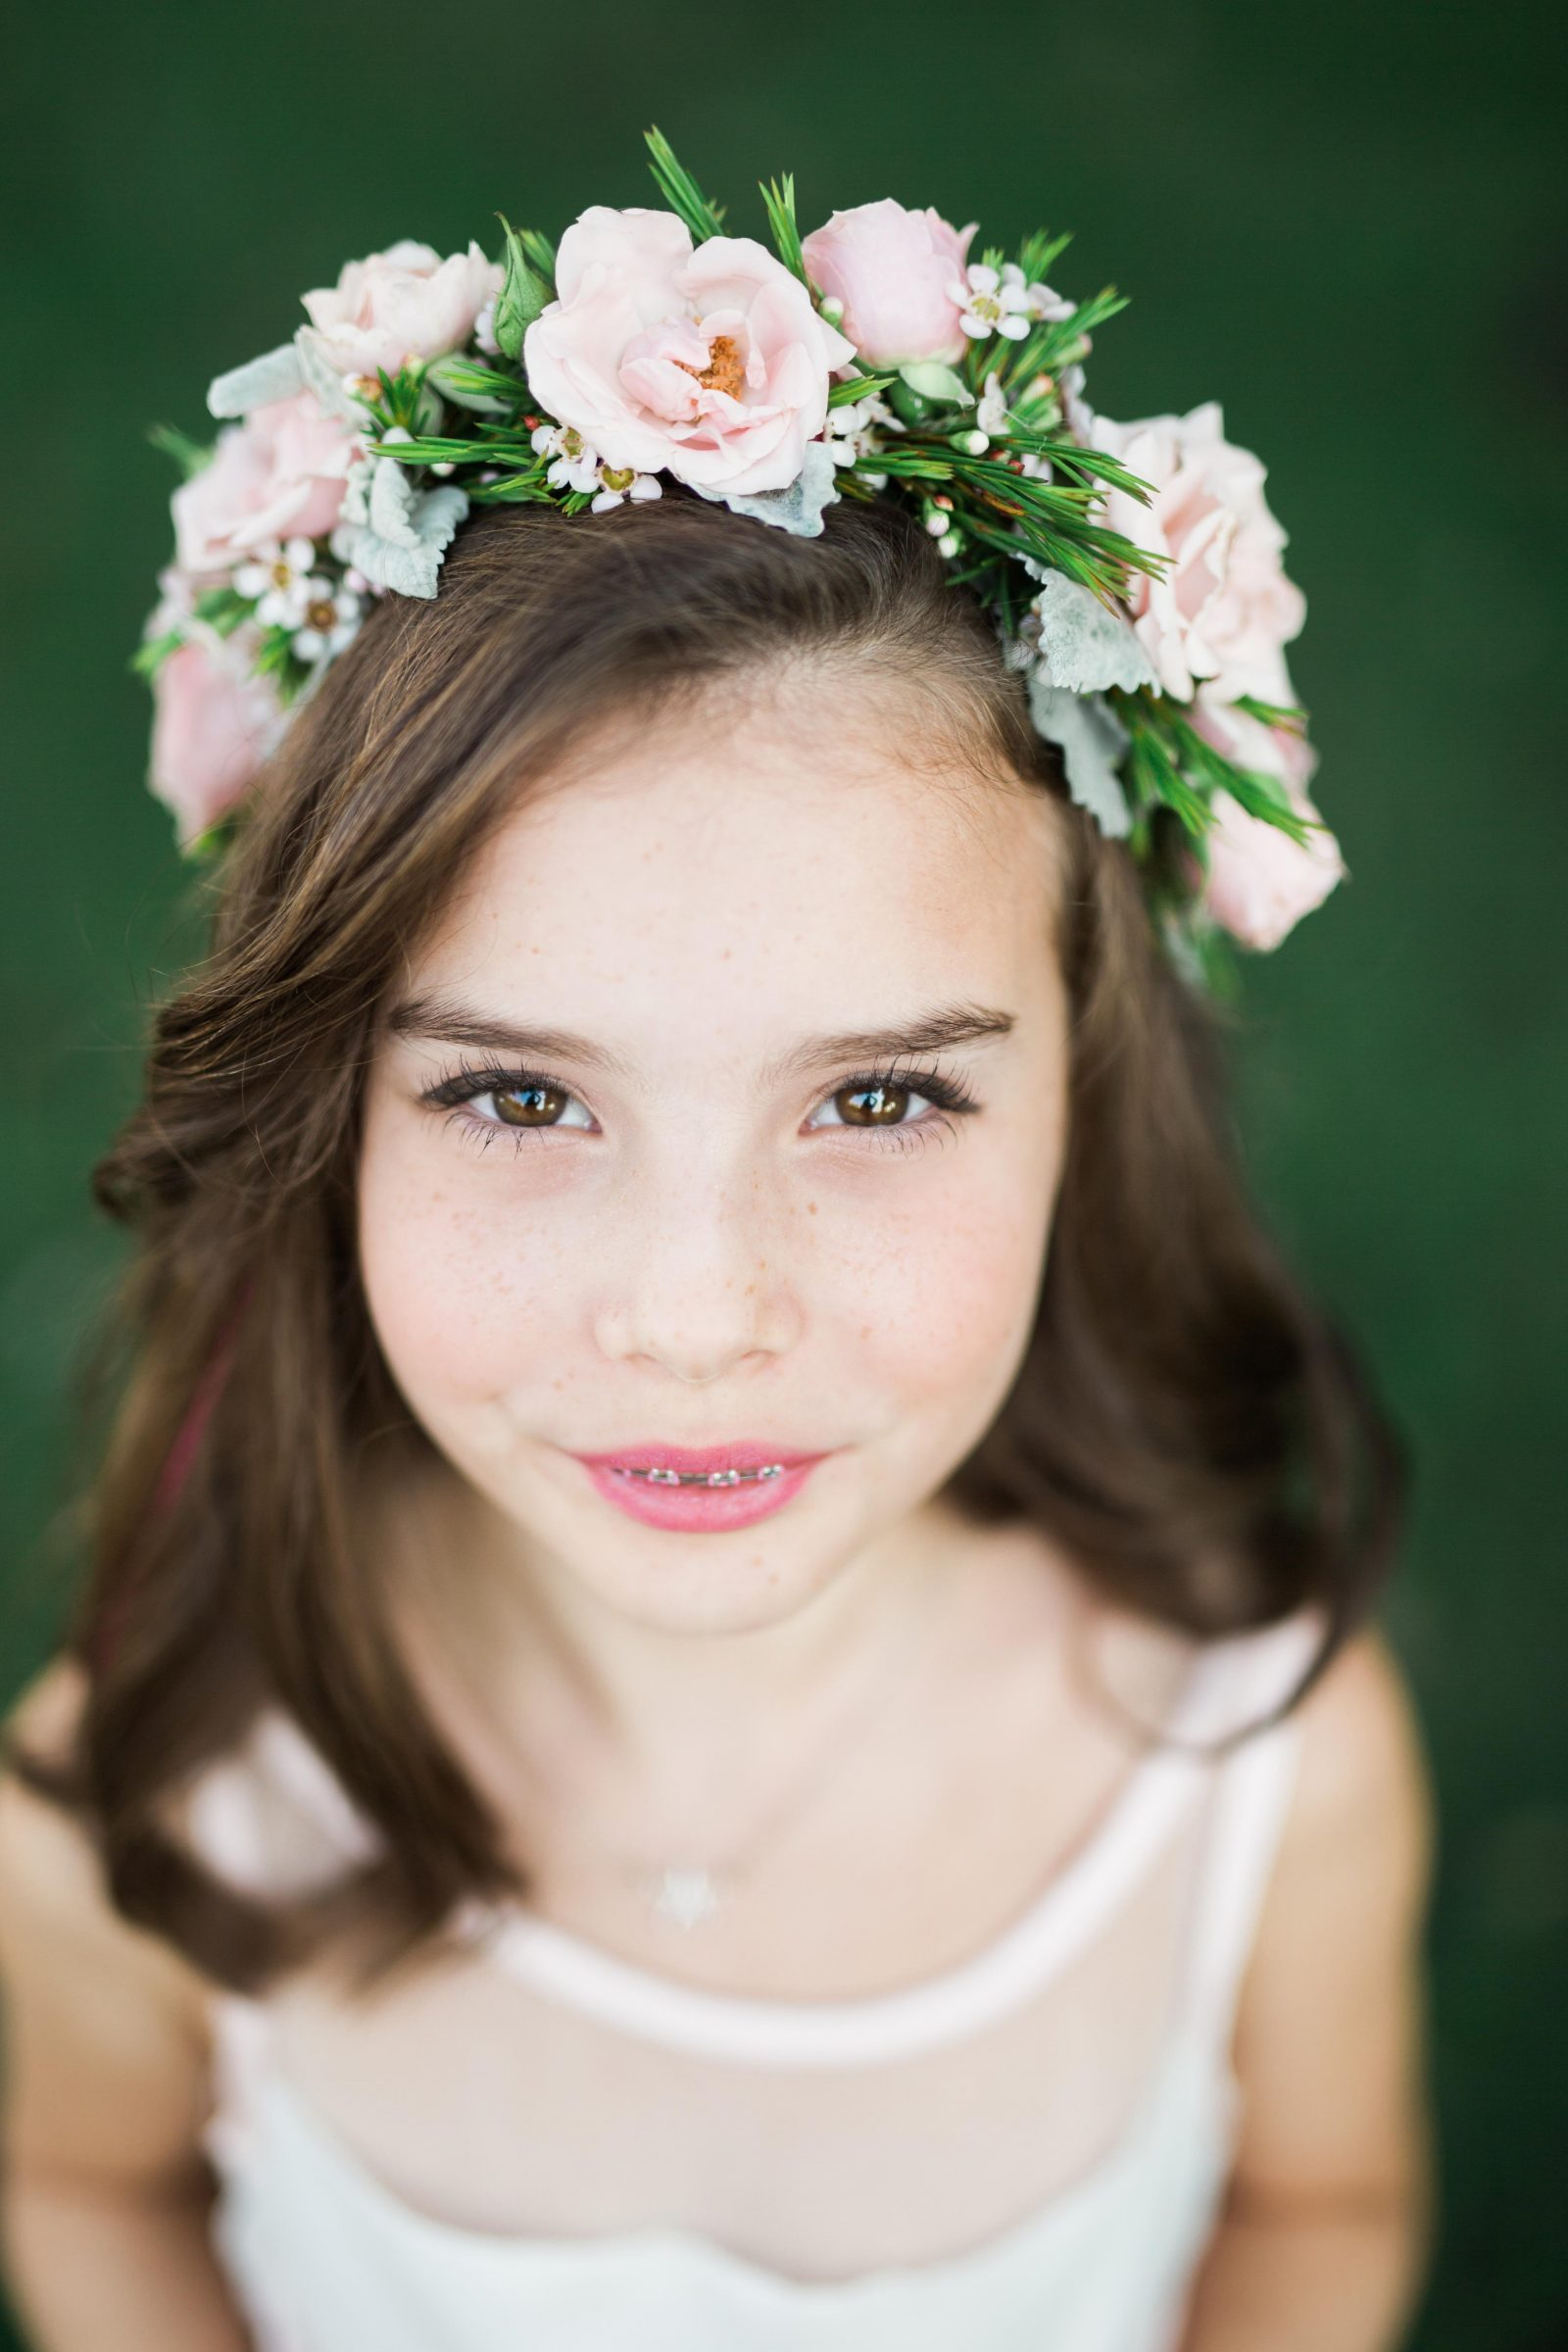 Wild rose events for the flower girls wild rose events flowers girl flower crown izmirmasajfo